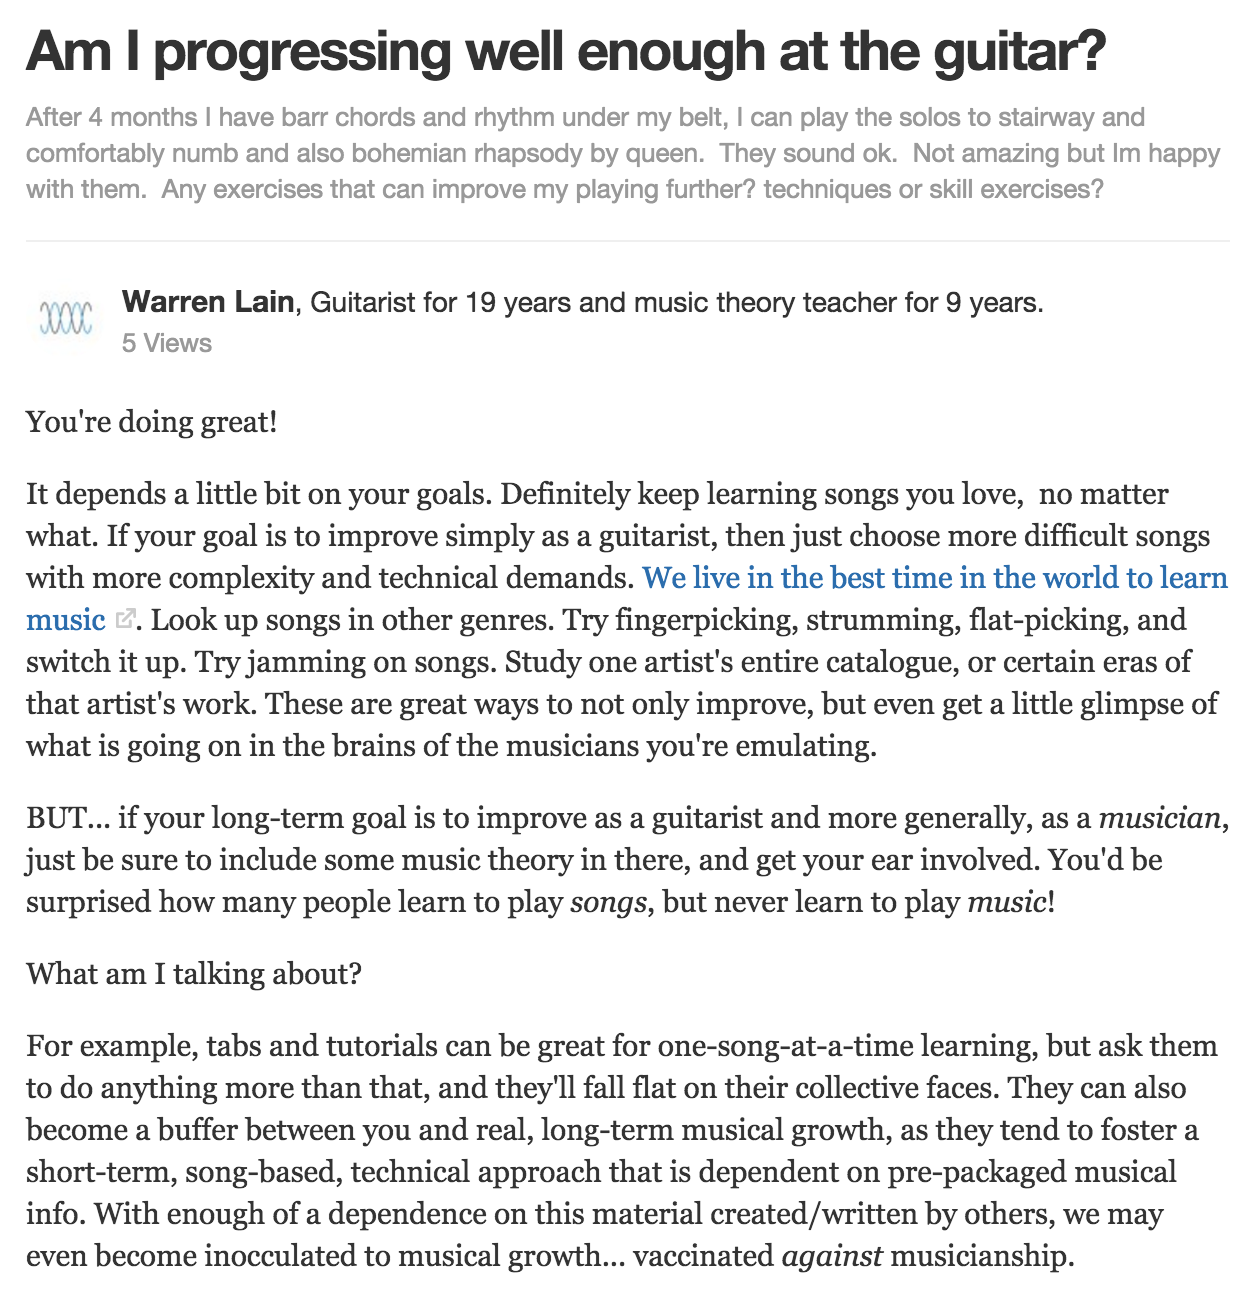 Are You Progressing Well Enough On the Guitar? - warrenmusic